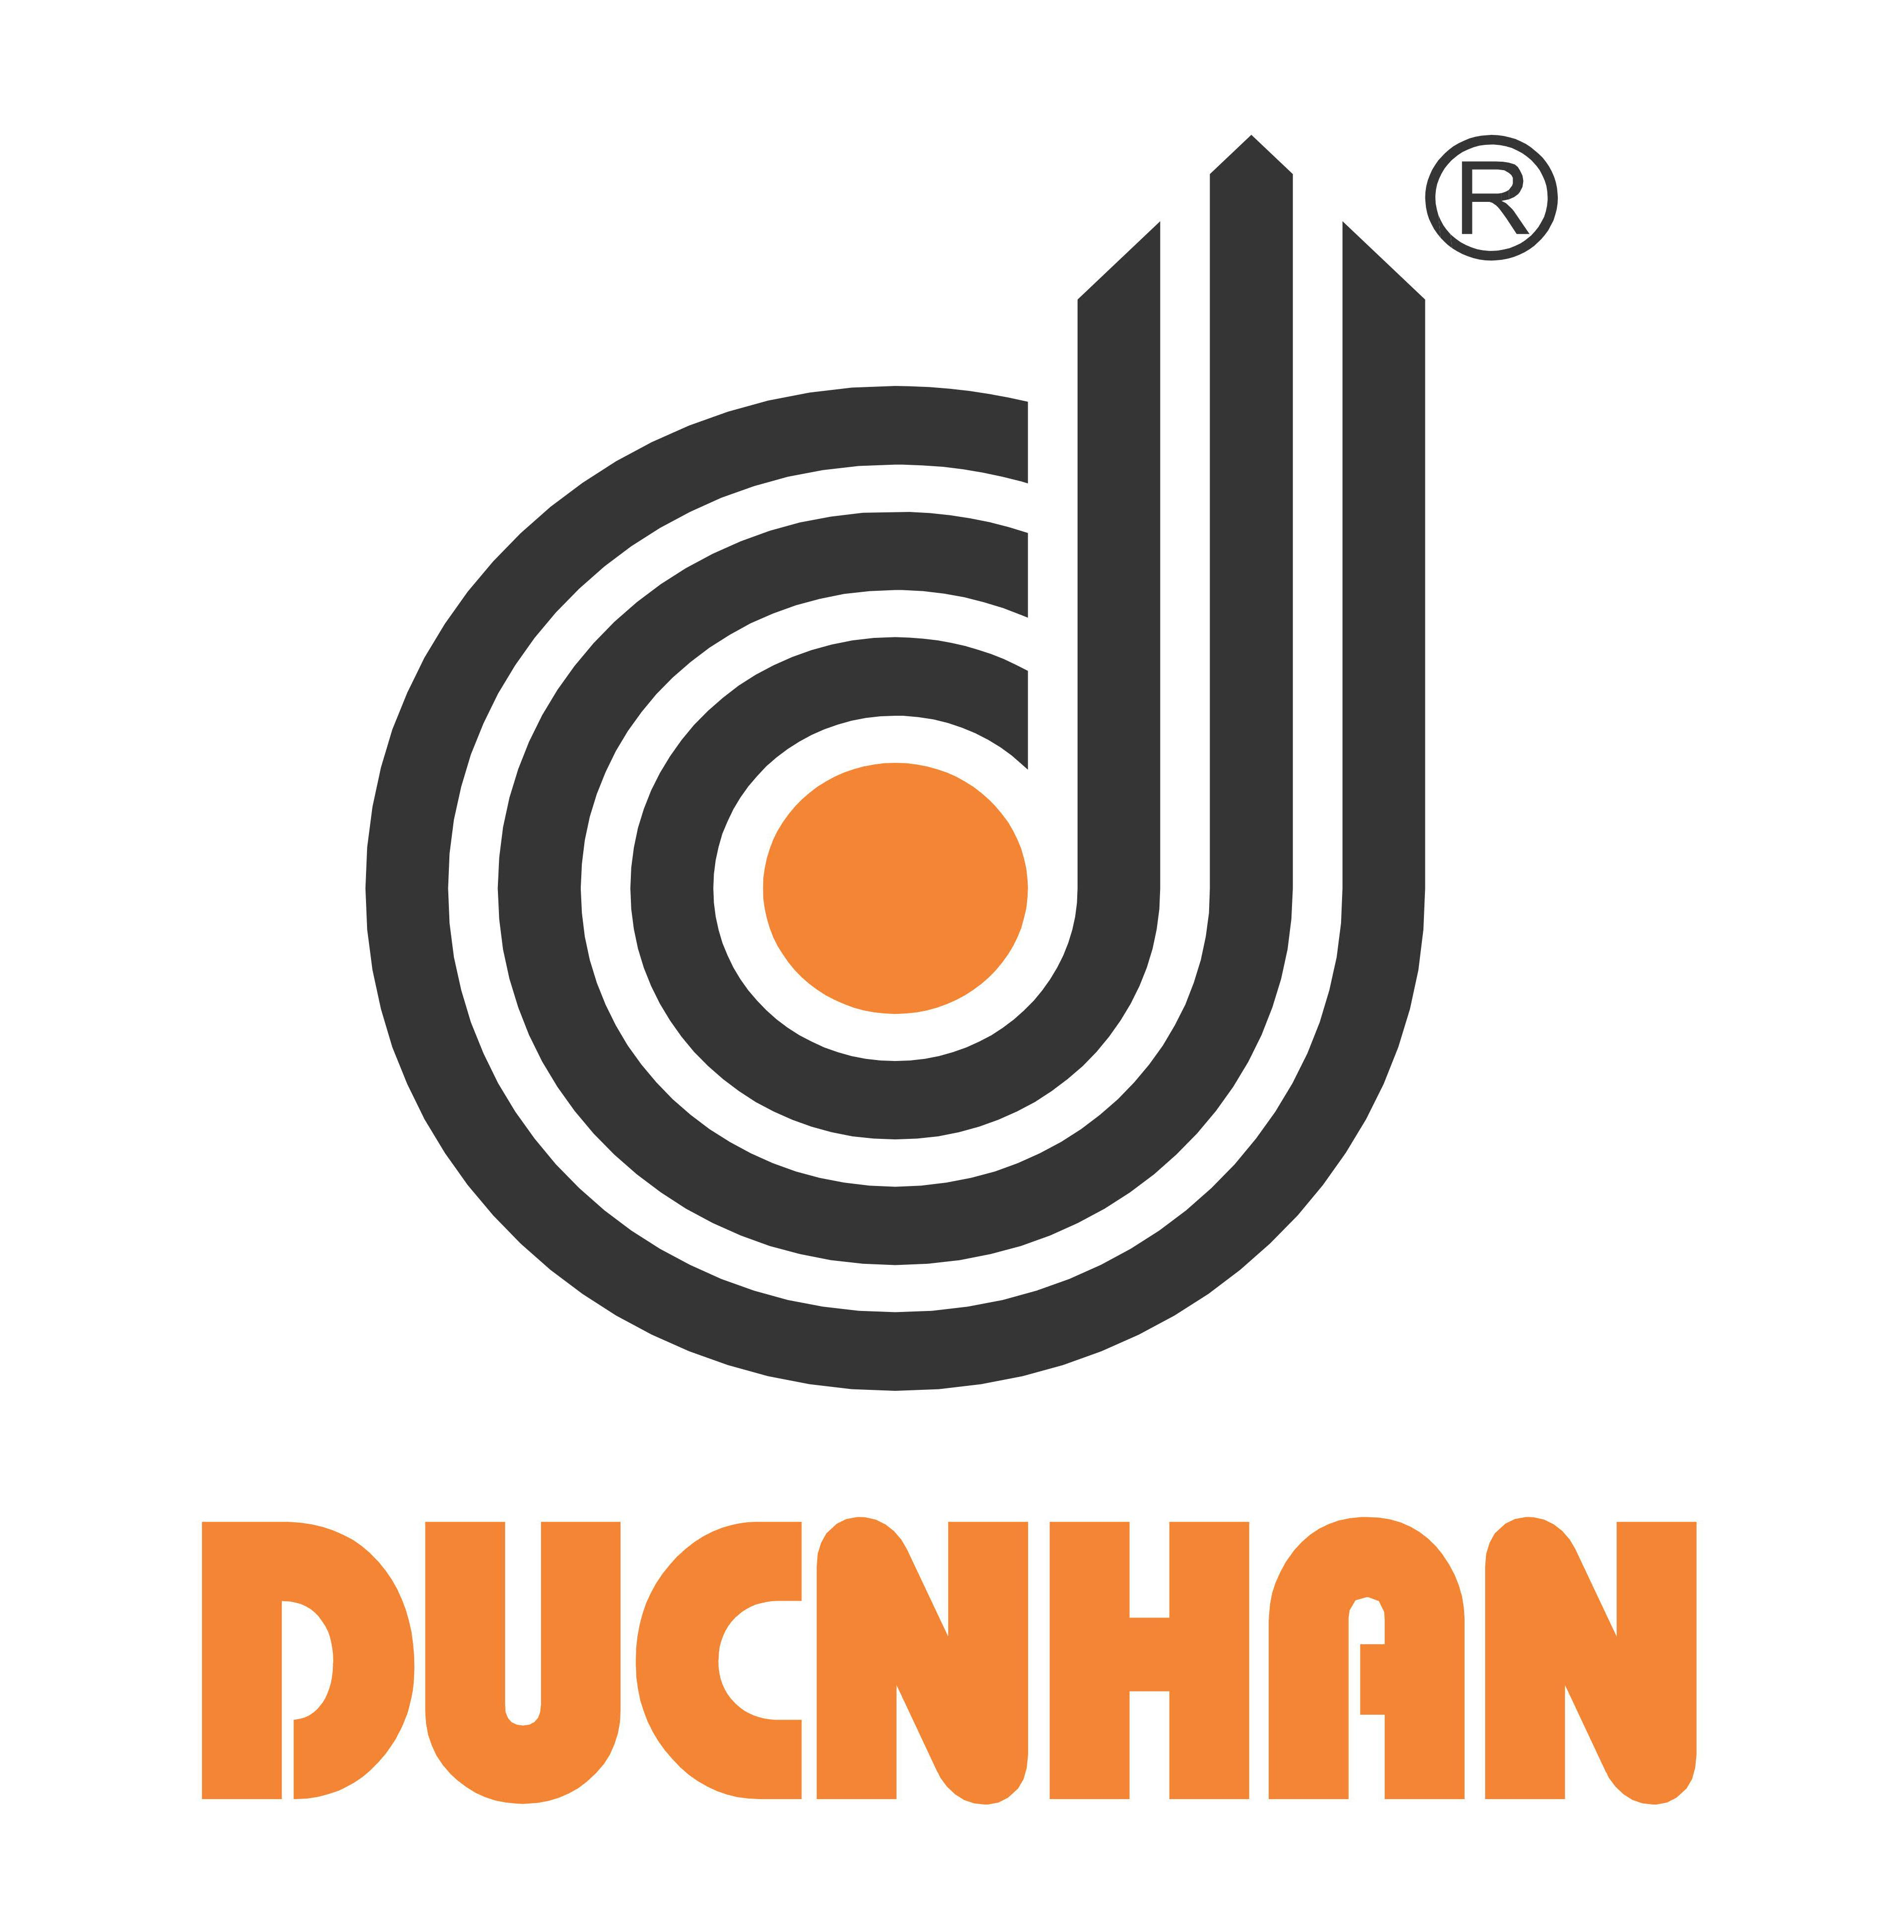 DUCNHAN SERVICE - TRADE - PRODUCTION COMPANY